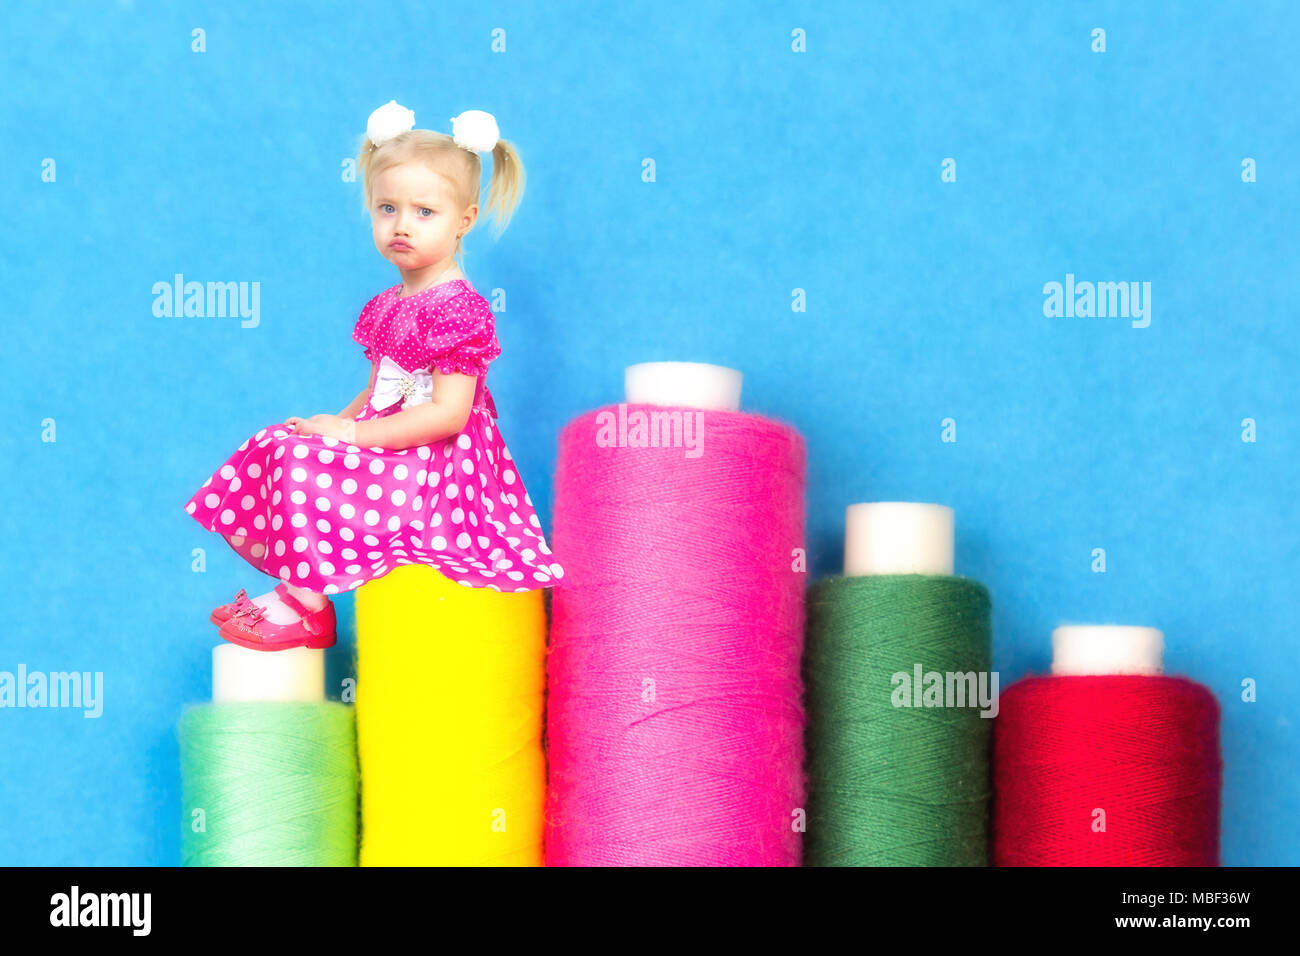 Puffed Dress Imágenes De Stock & Puffed Dress Fotos De Stock - Alamy